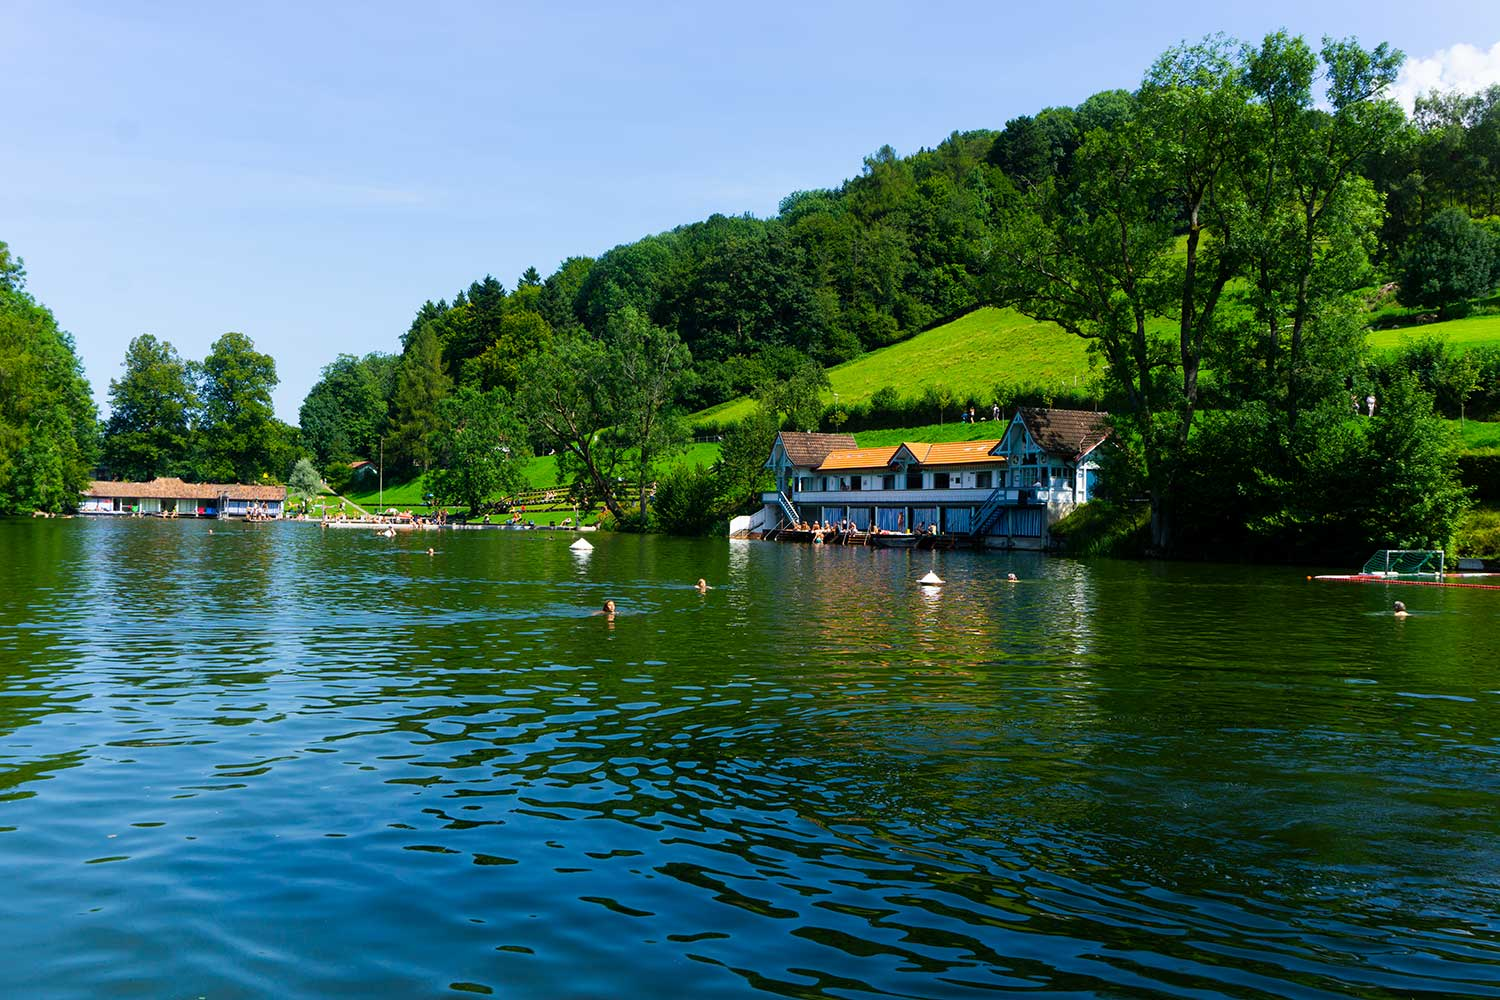 A lake for swimming in St. Gallen, Switzerland.